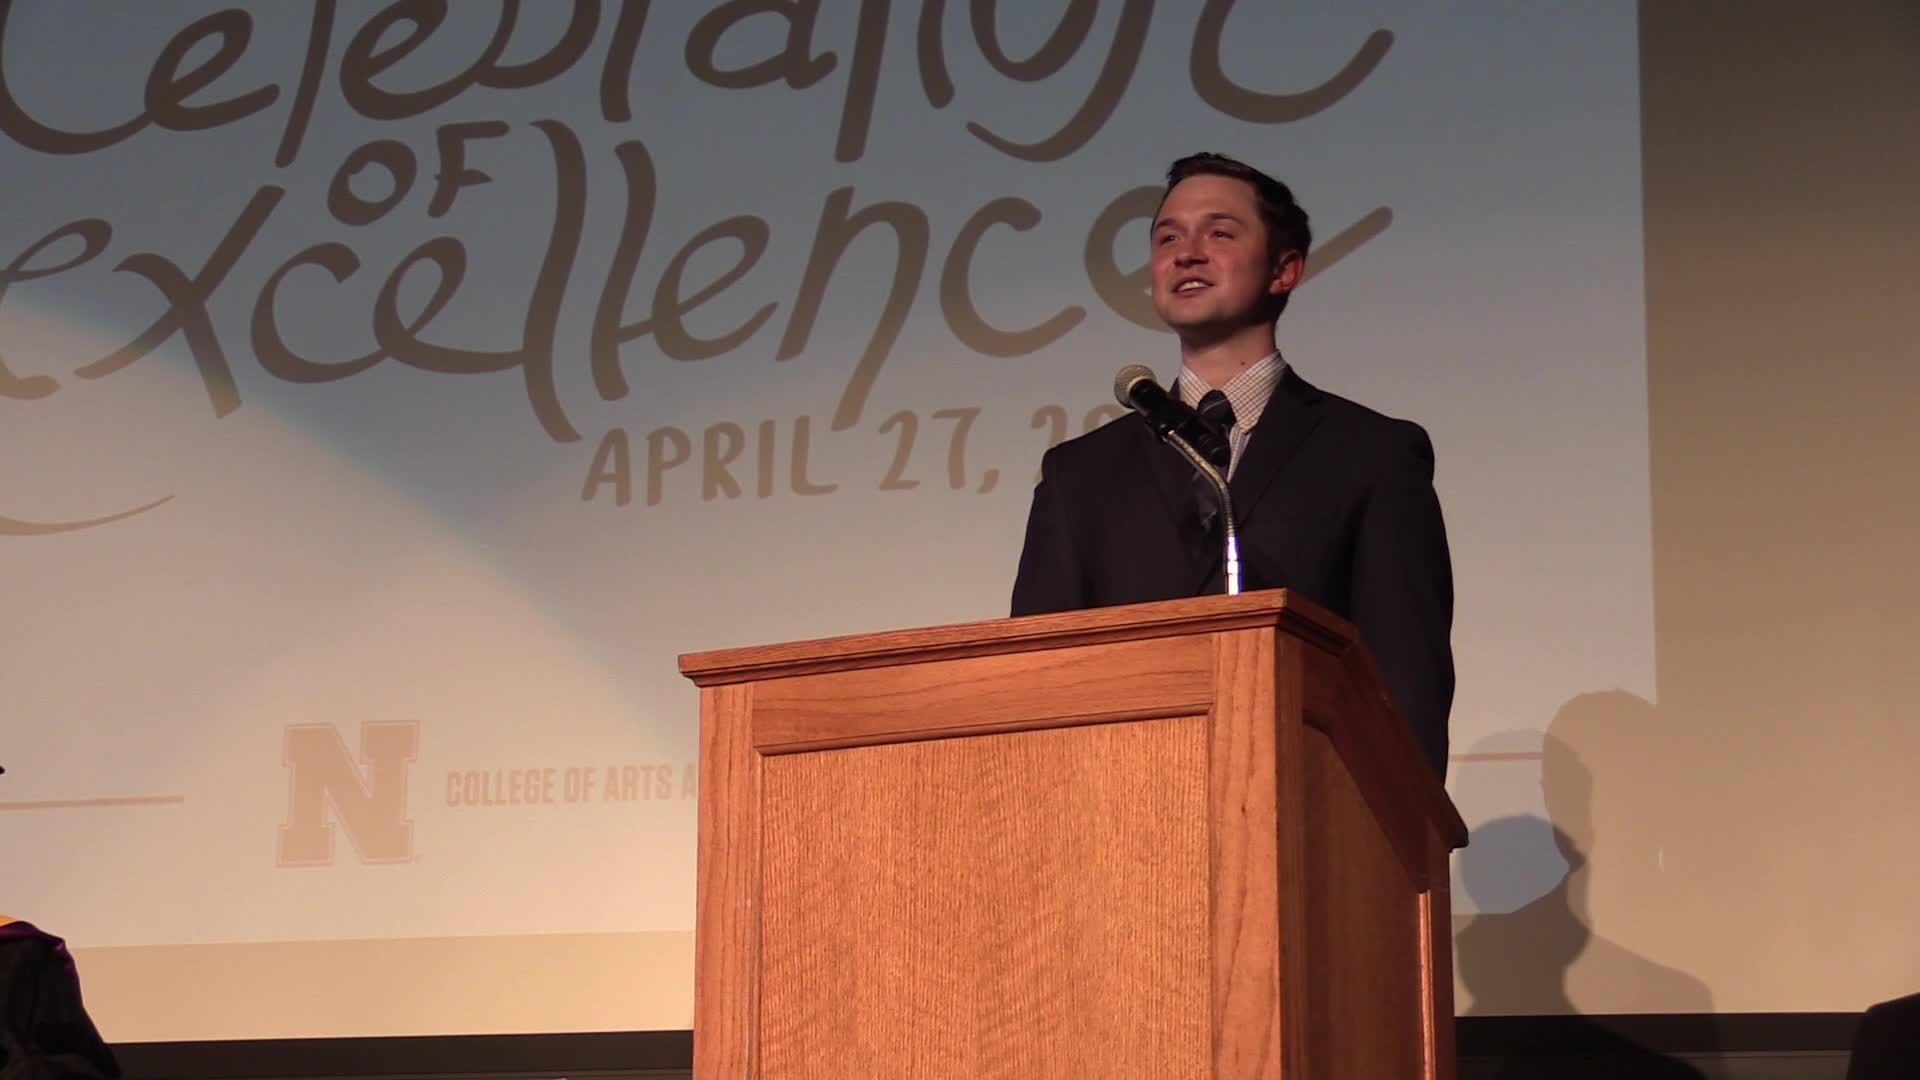 Samuel Baue's senior reflection at Celebration of Excellence 2018